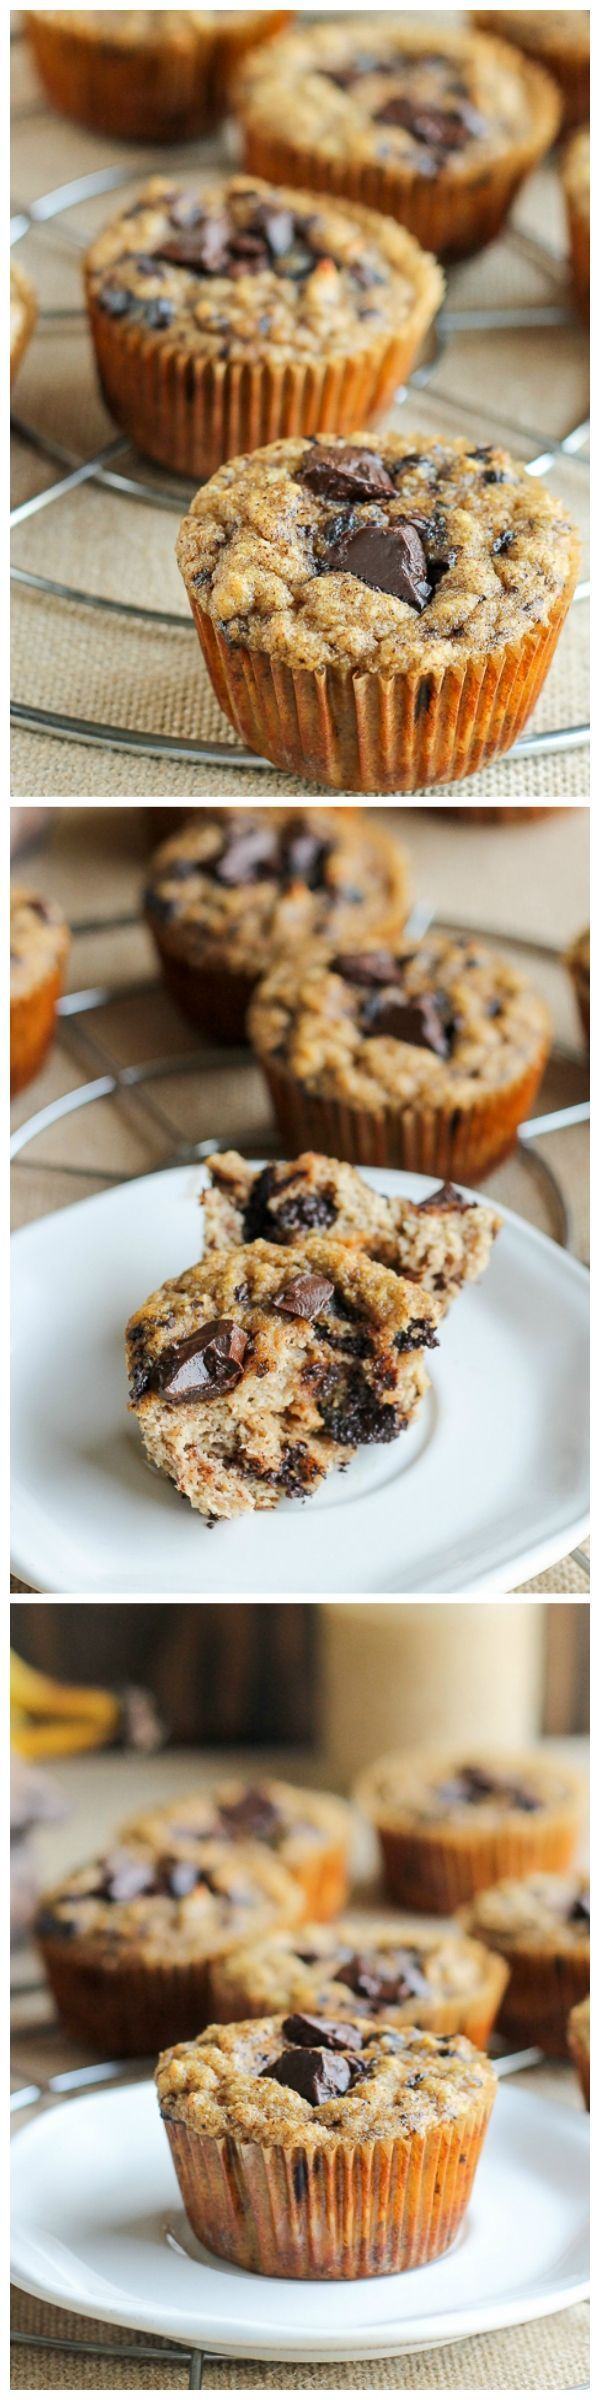 men u  s tuxedo shirts sale These Paleo Almond Butter Chocolate Chip Banana Muffins taste just like your mom  s banana muffins They   re sweetened with only bananas